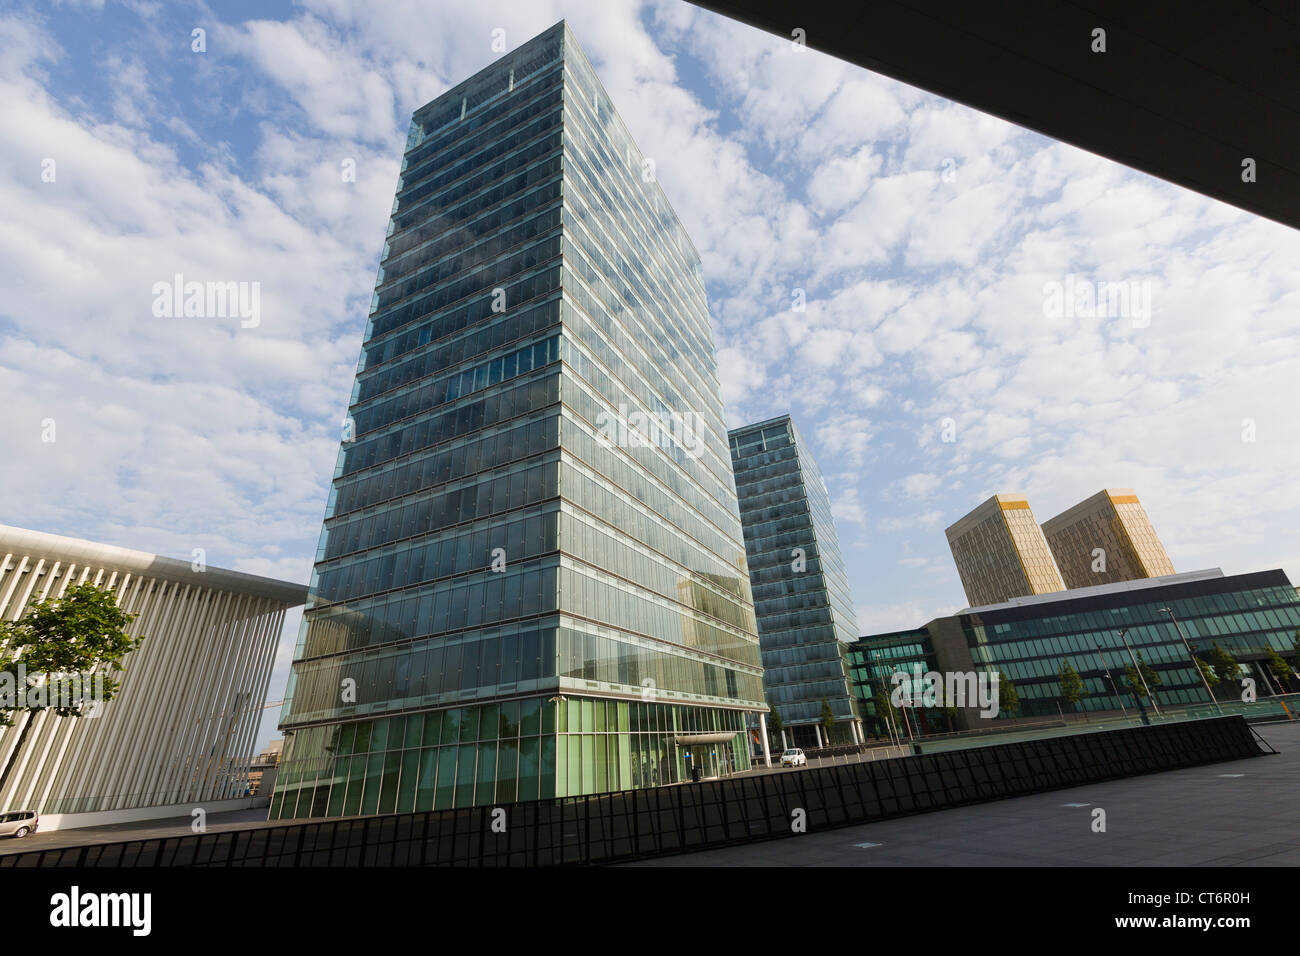 Philharmonie, twin towers and towers with offices of the european court of justice - Stock Image